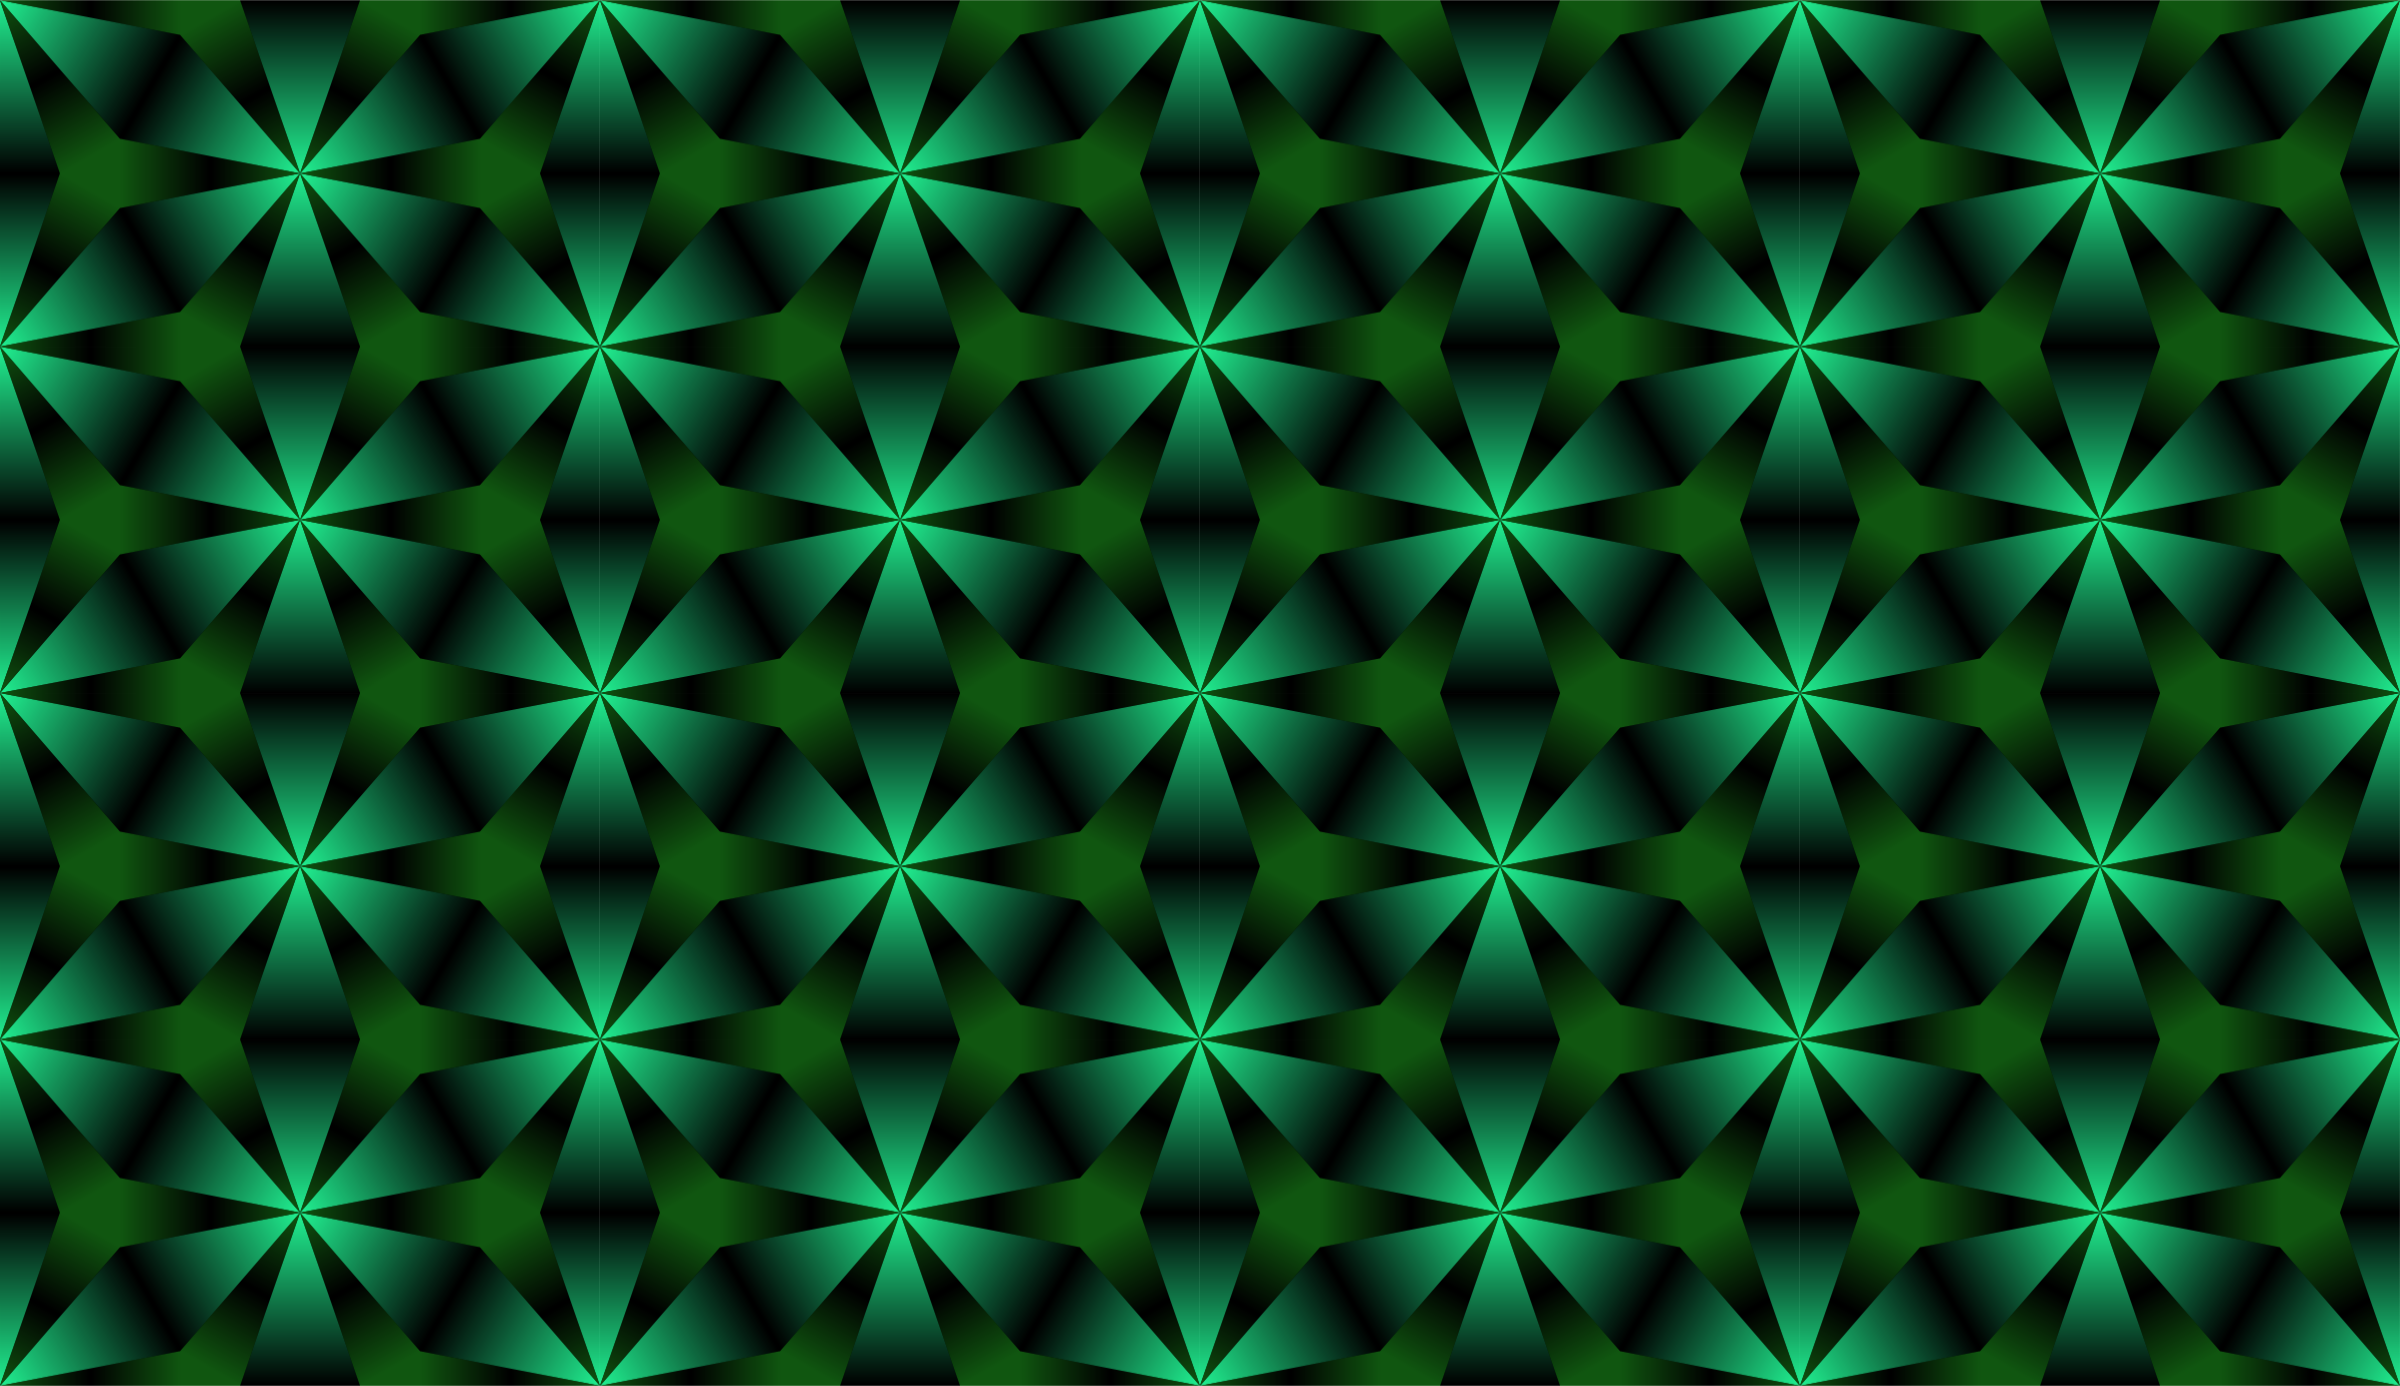 Tessellation 16 (colour 4) by Firkin